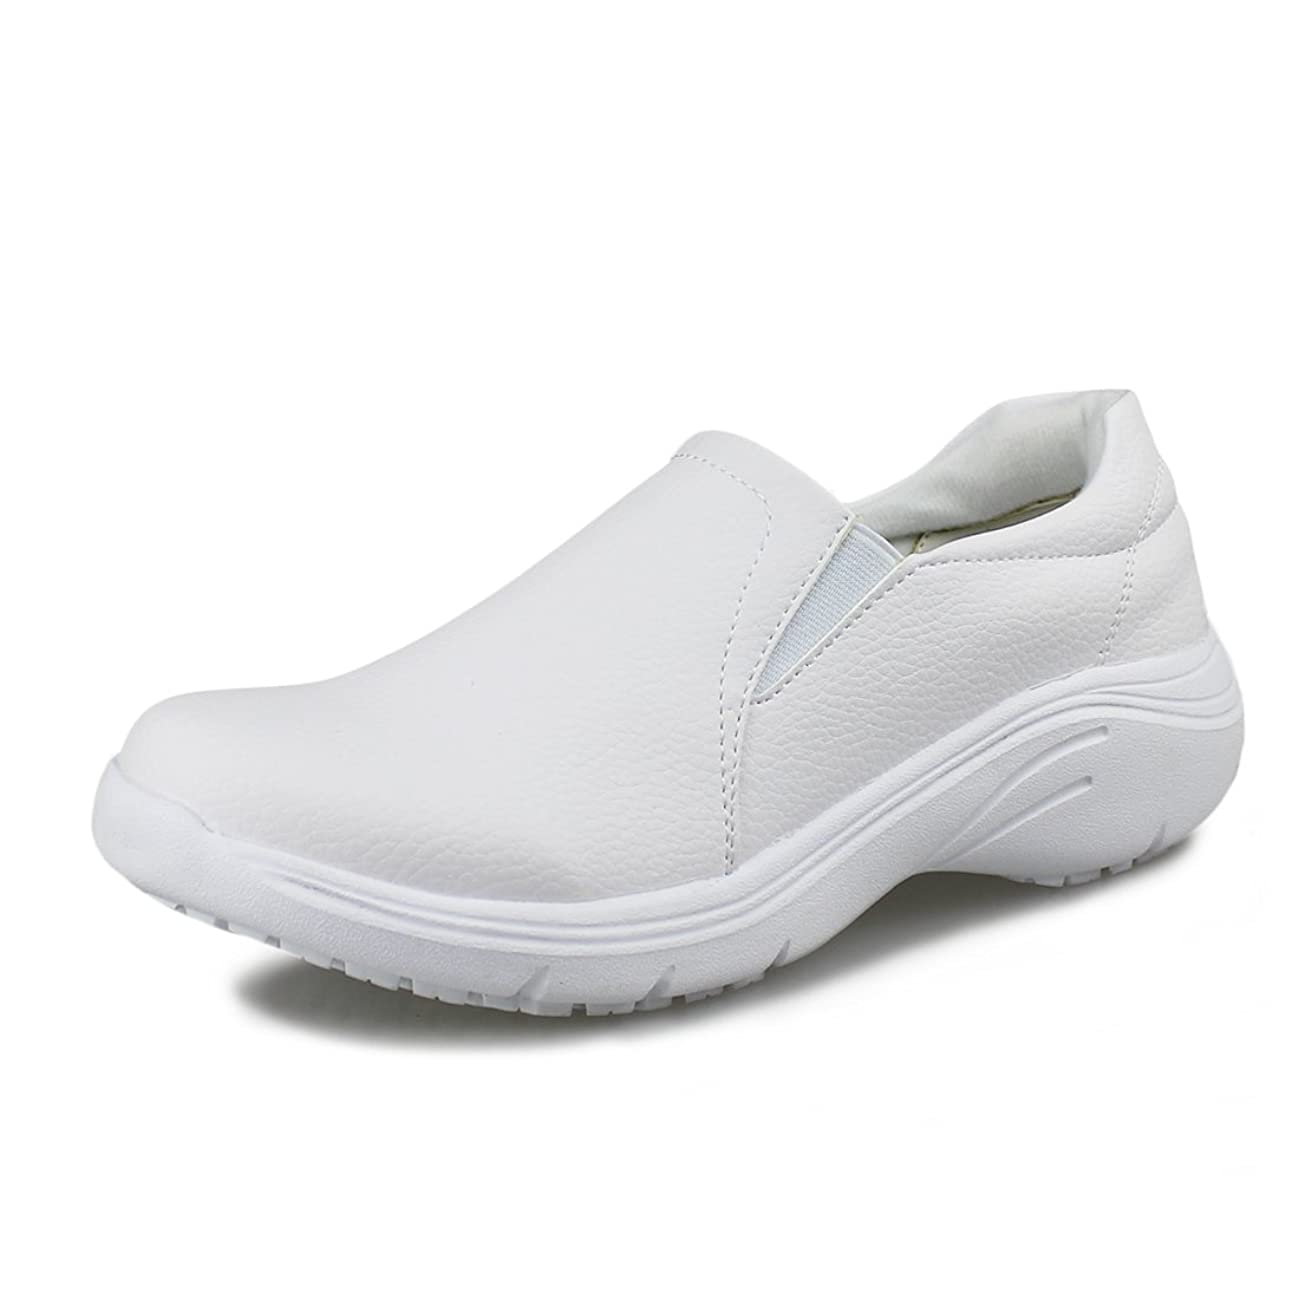 Hawkwell Women's Lightweight Comfort Slip Resistant Nursing Shoes